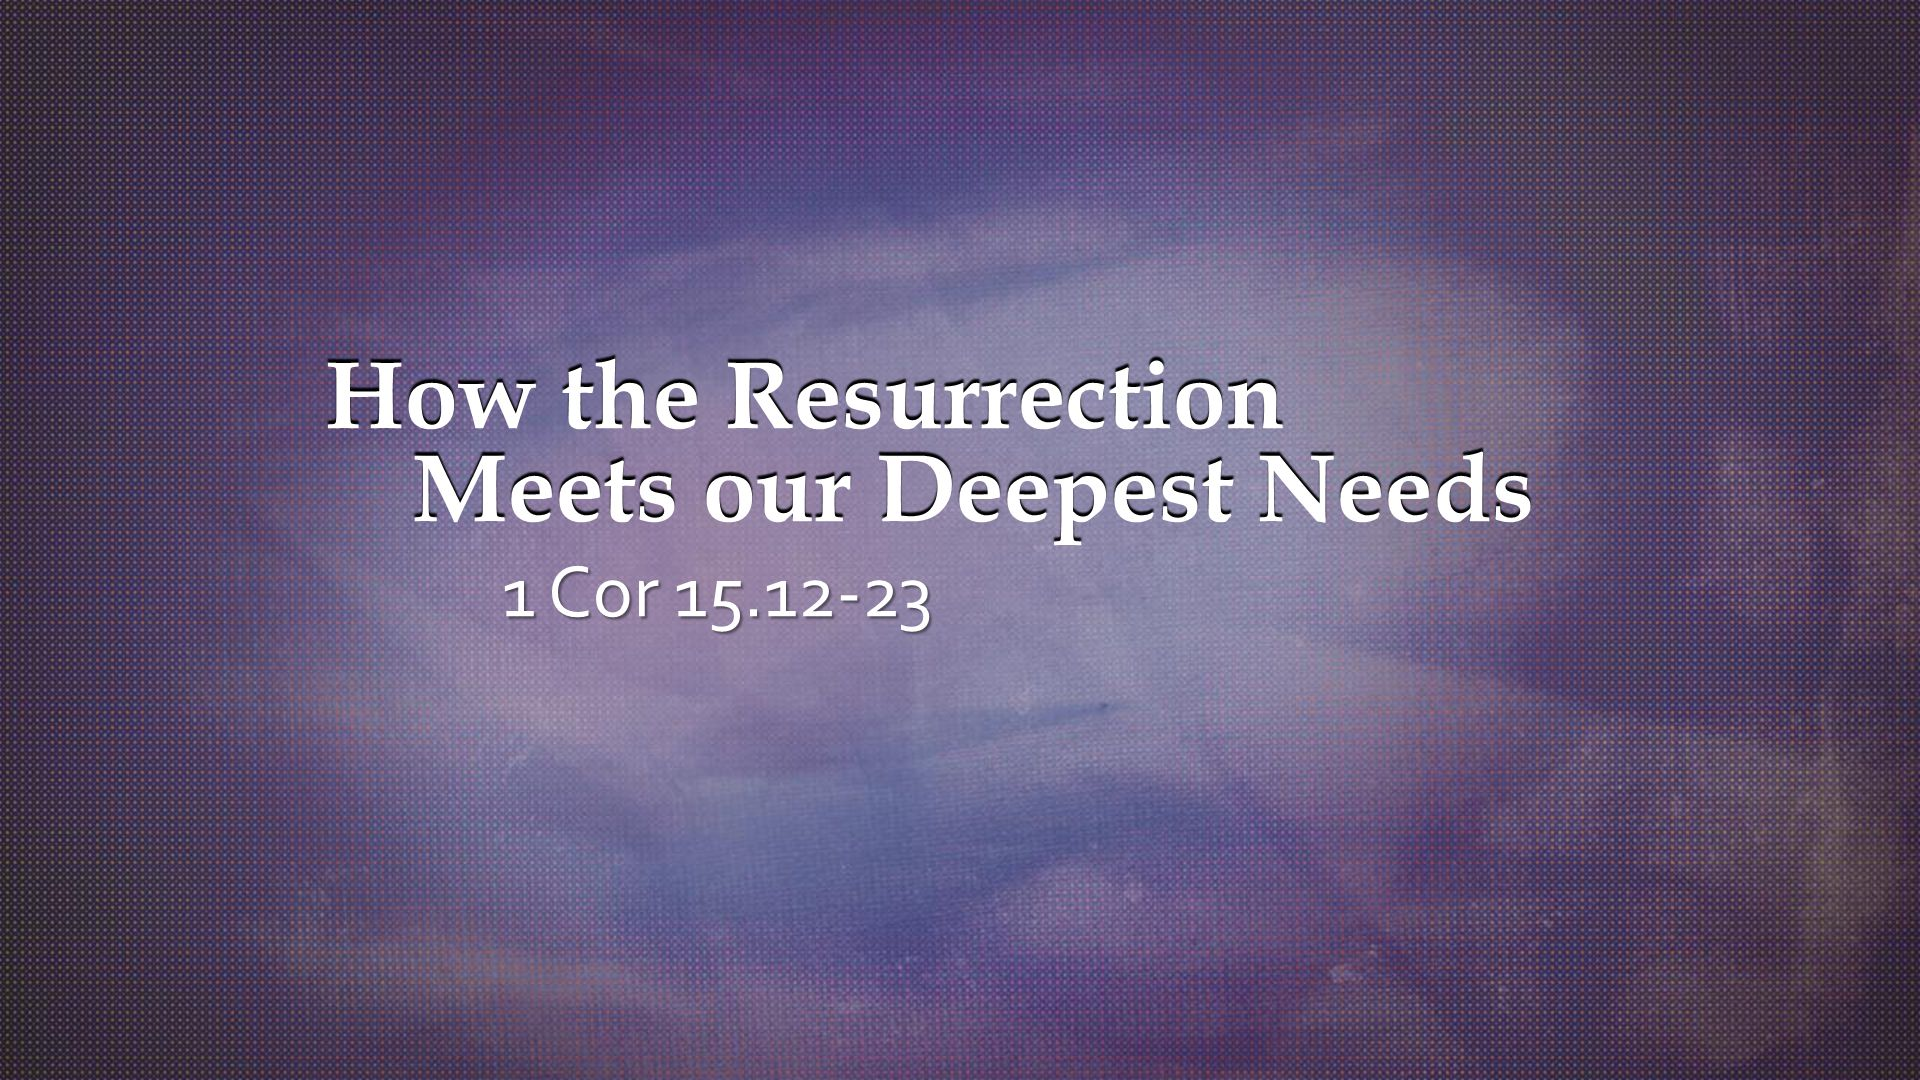 How the Resurrection Meets our Deepest Needs 1 Cor 15.12-23